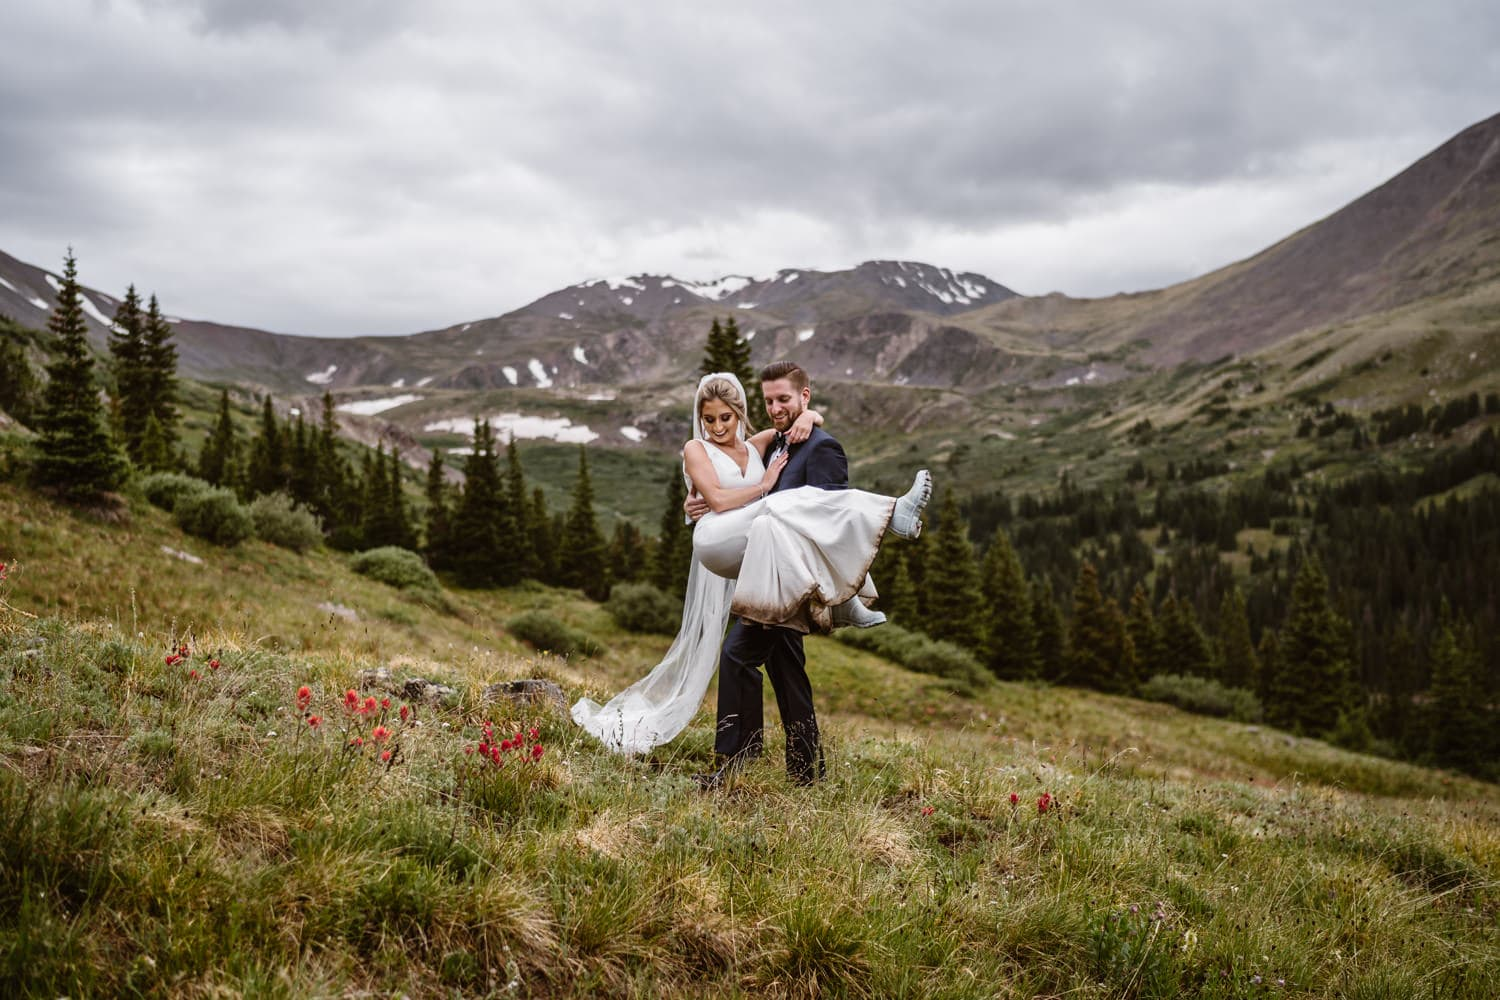 Bride and Groom Dancing at Georgetown, CO Elopement